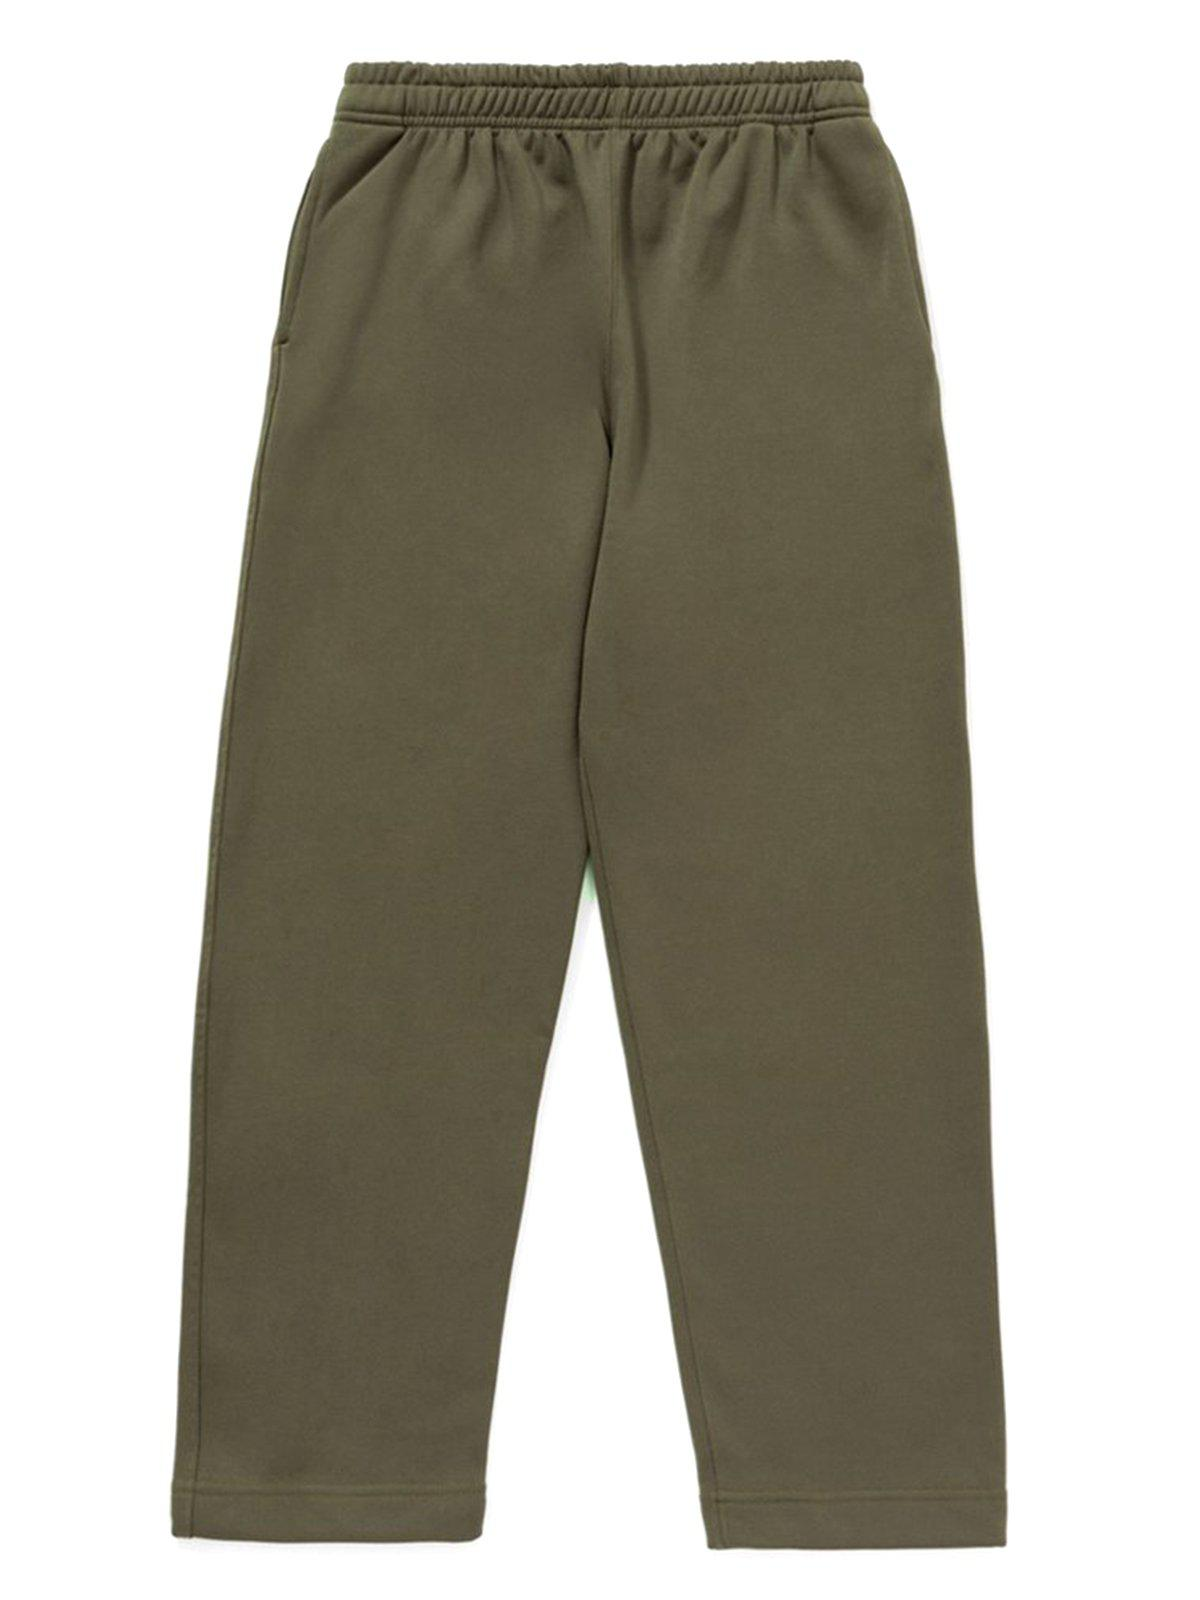 Lady White Co. Sport Trouser Olive - MORE by Morello Indonesia